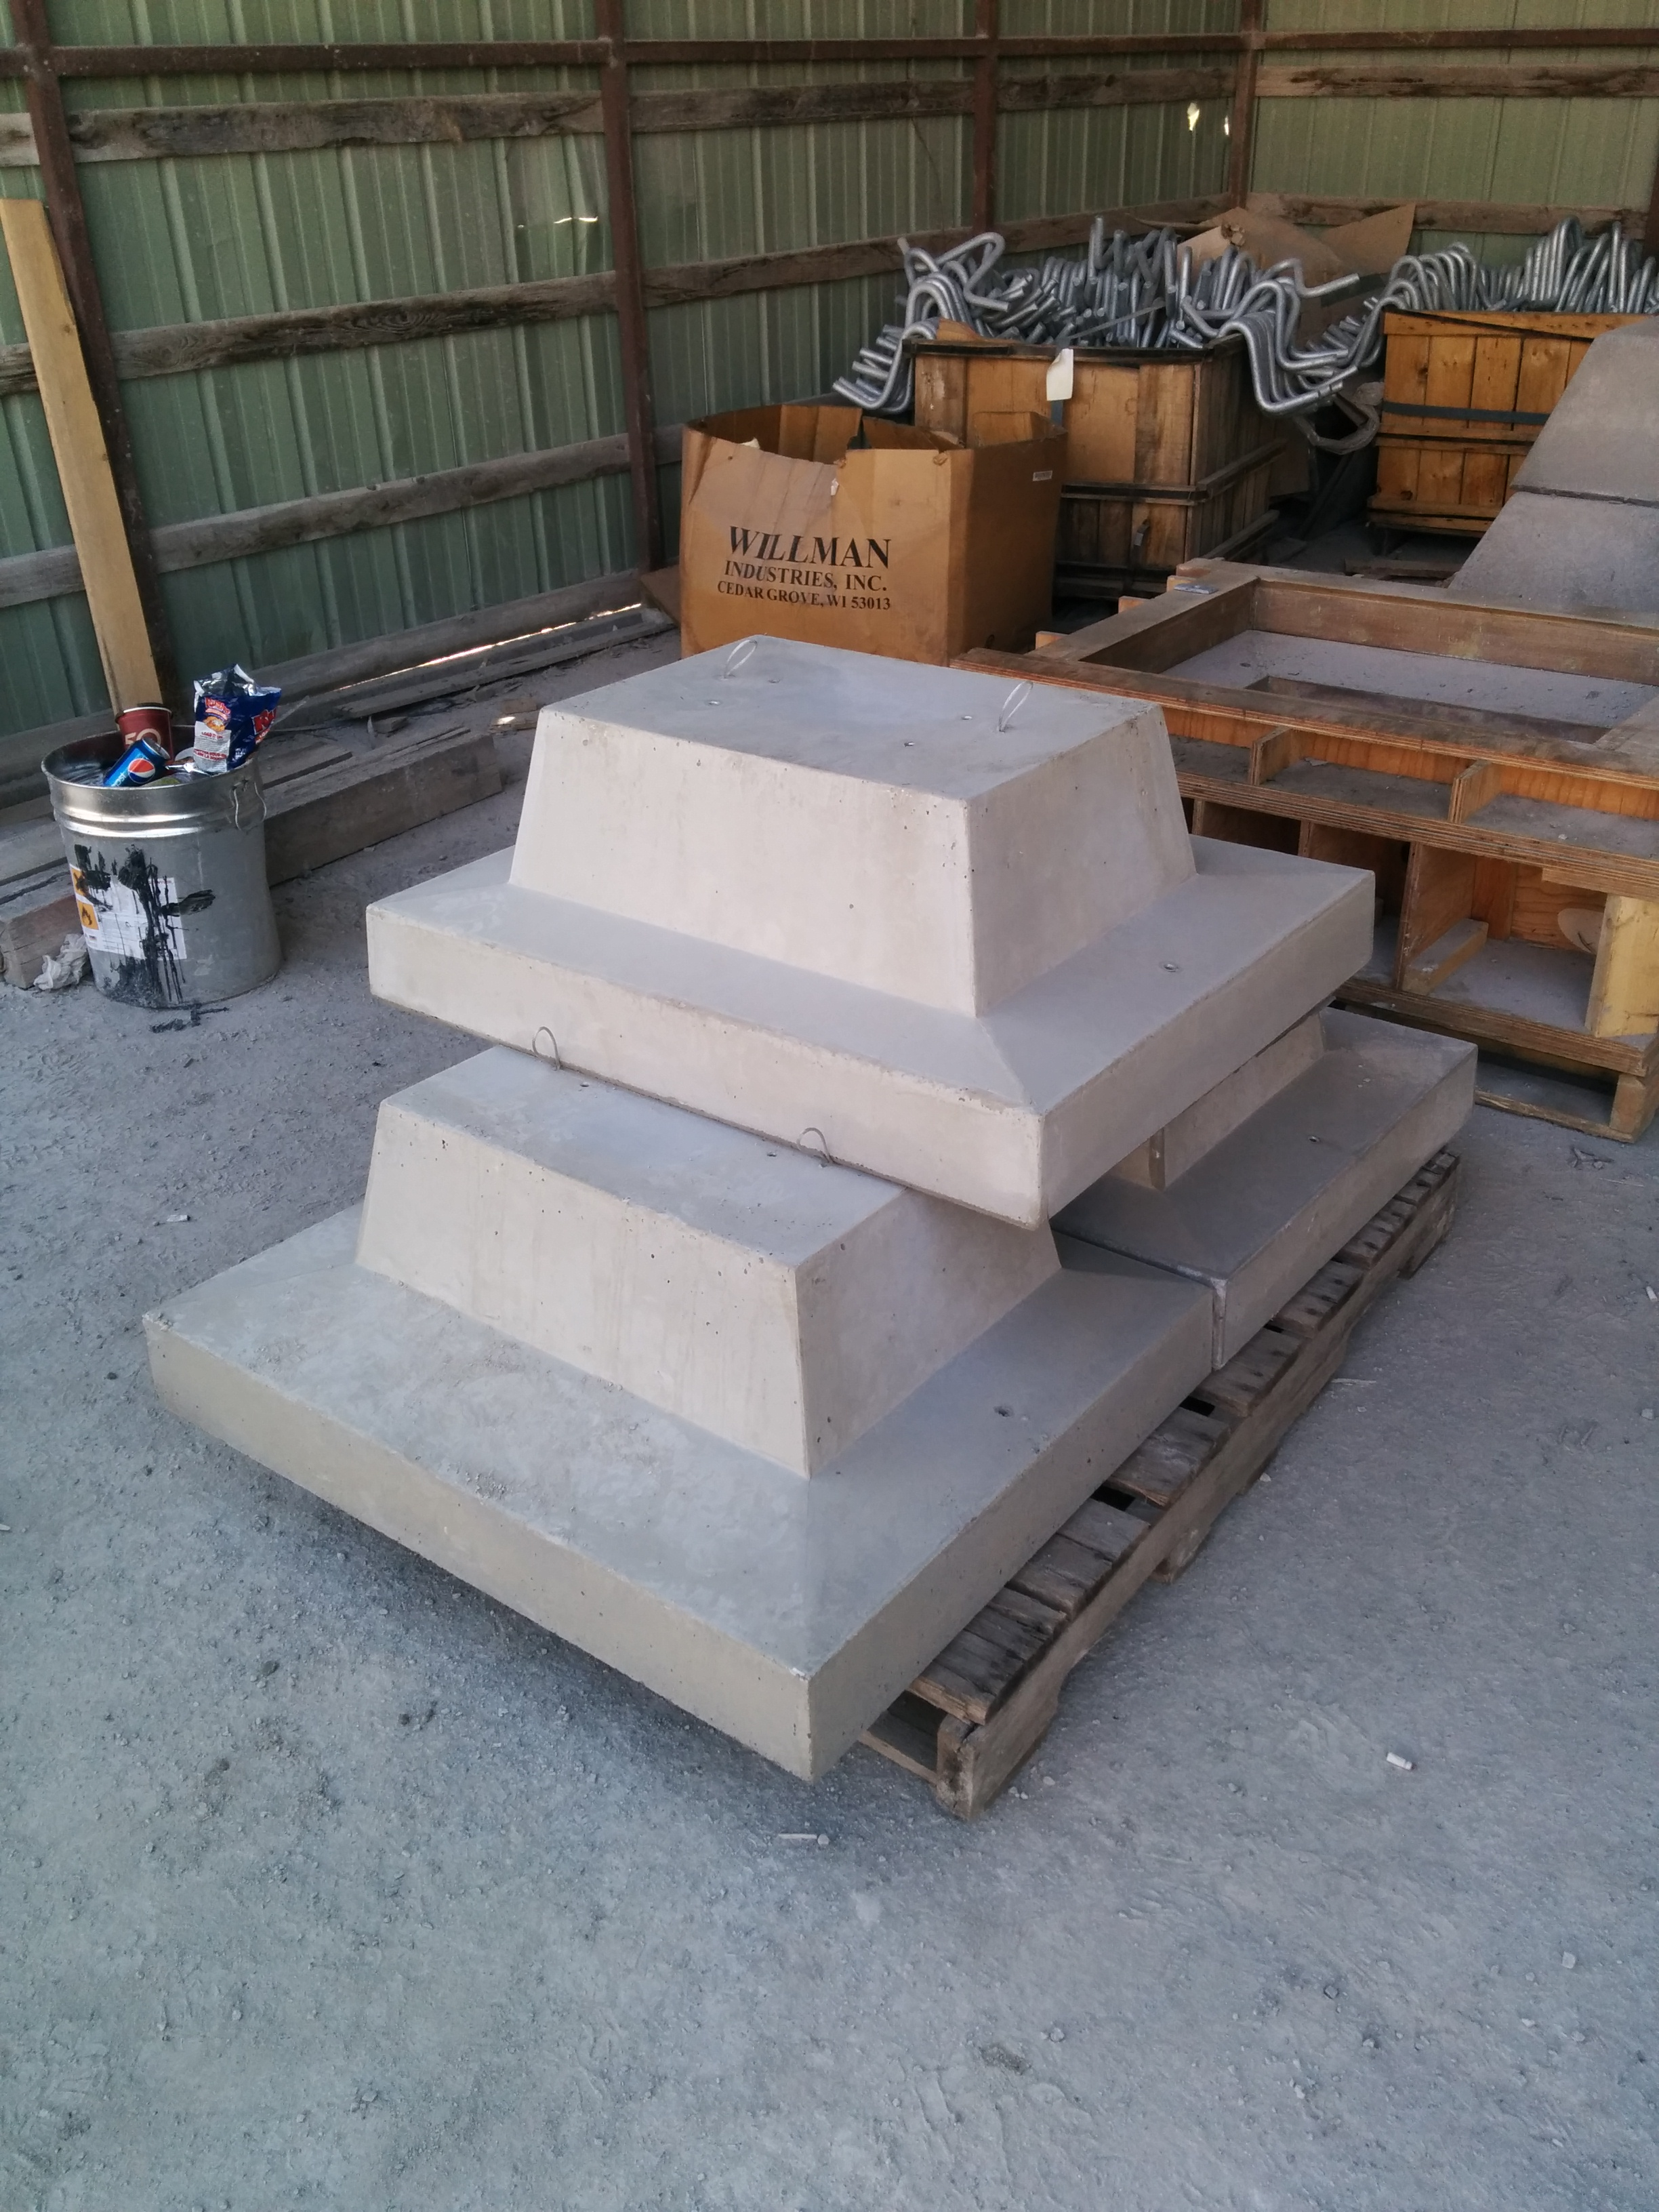 I sourced a pre-cast concrete supplier to create prototypes for testing.